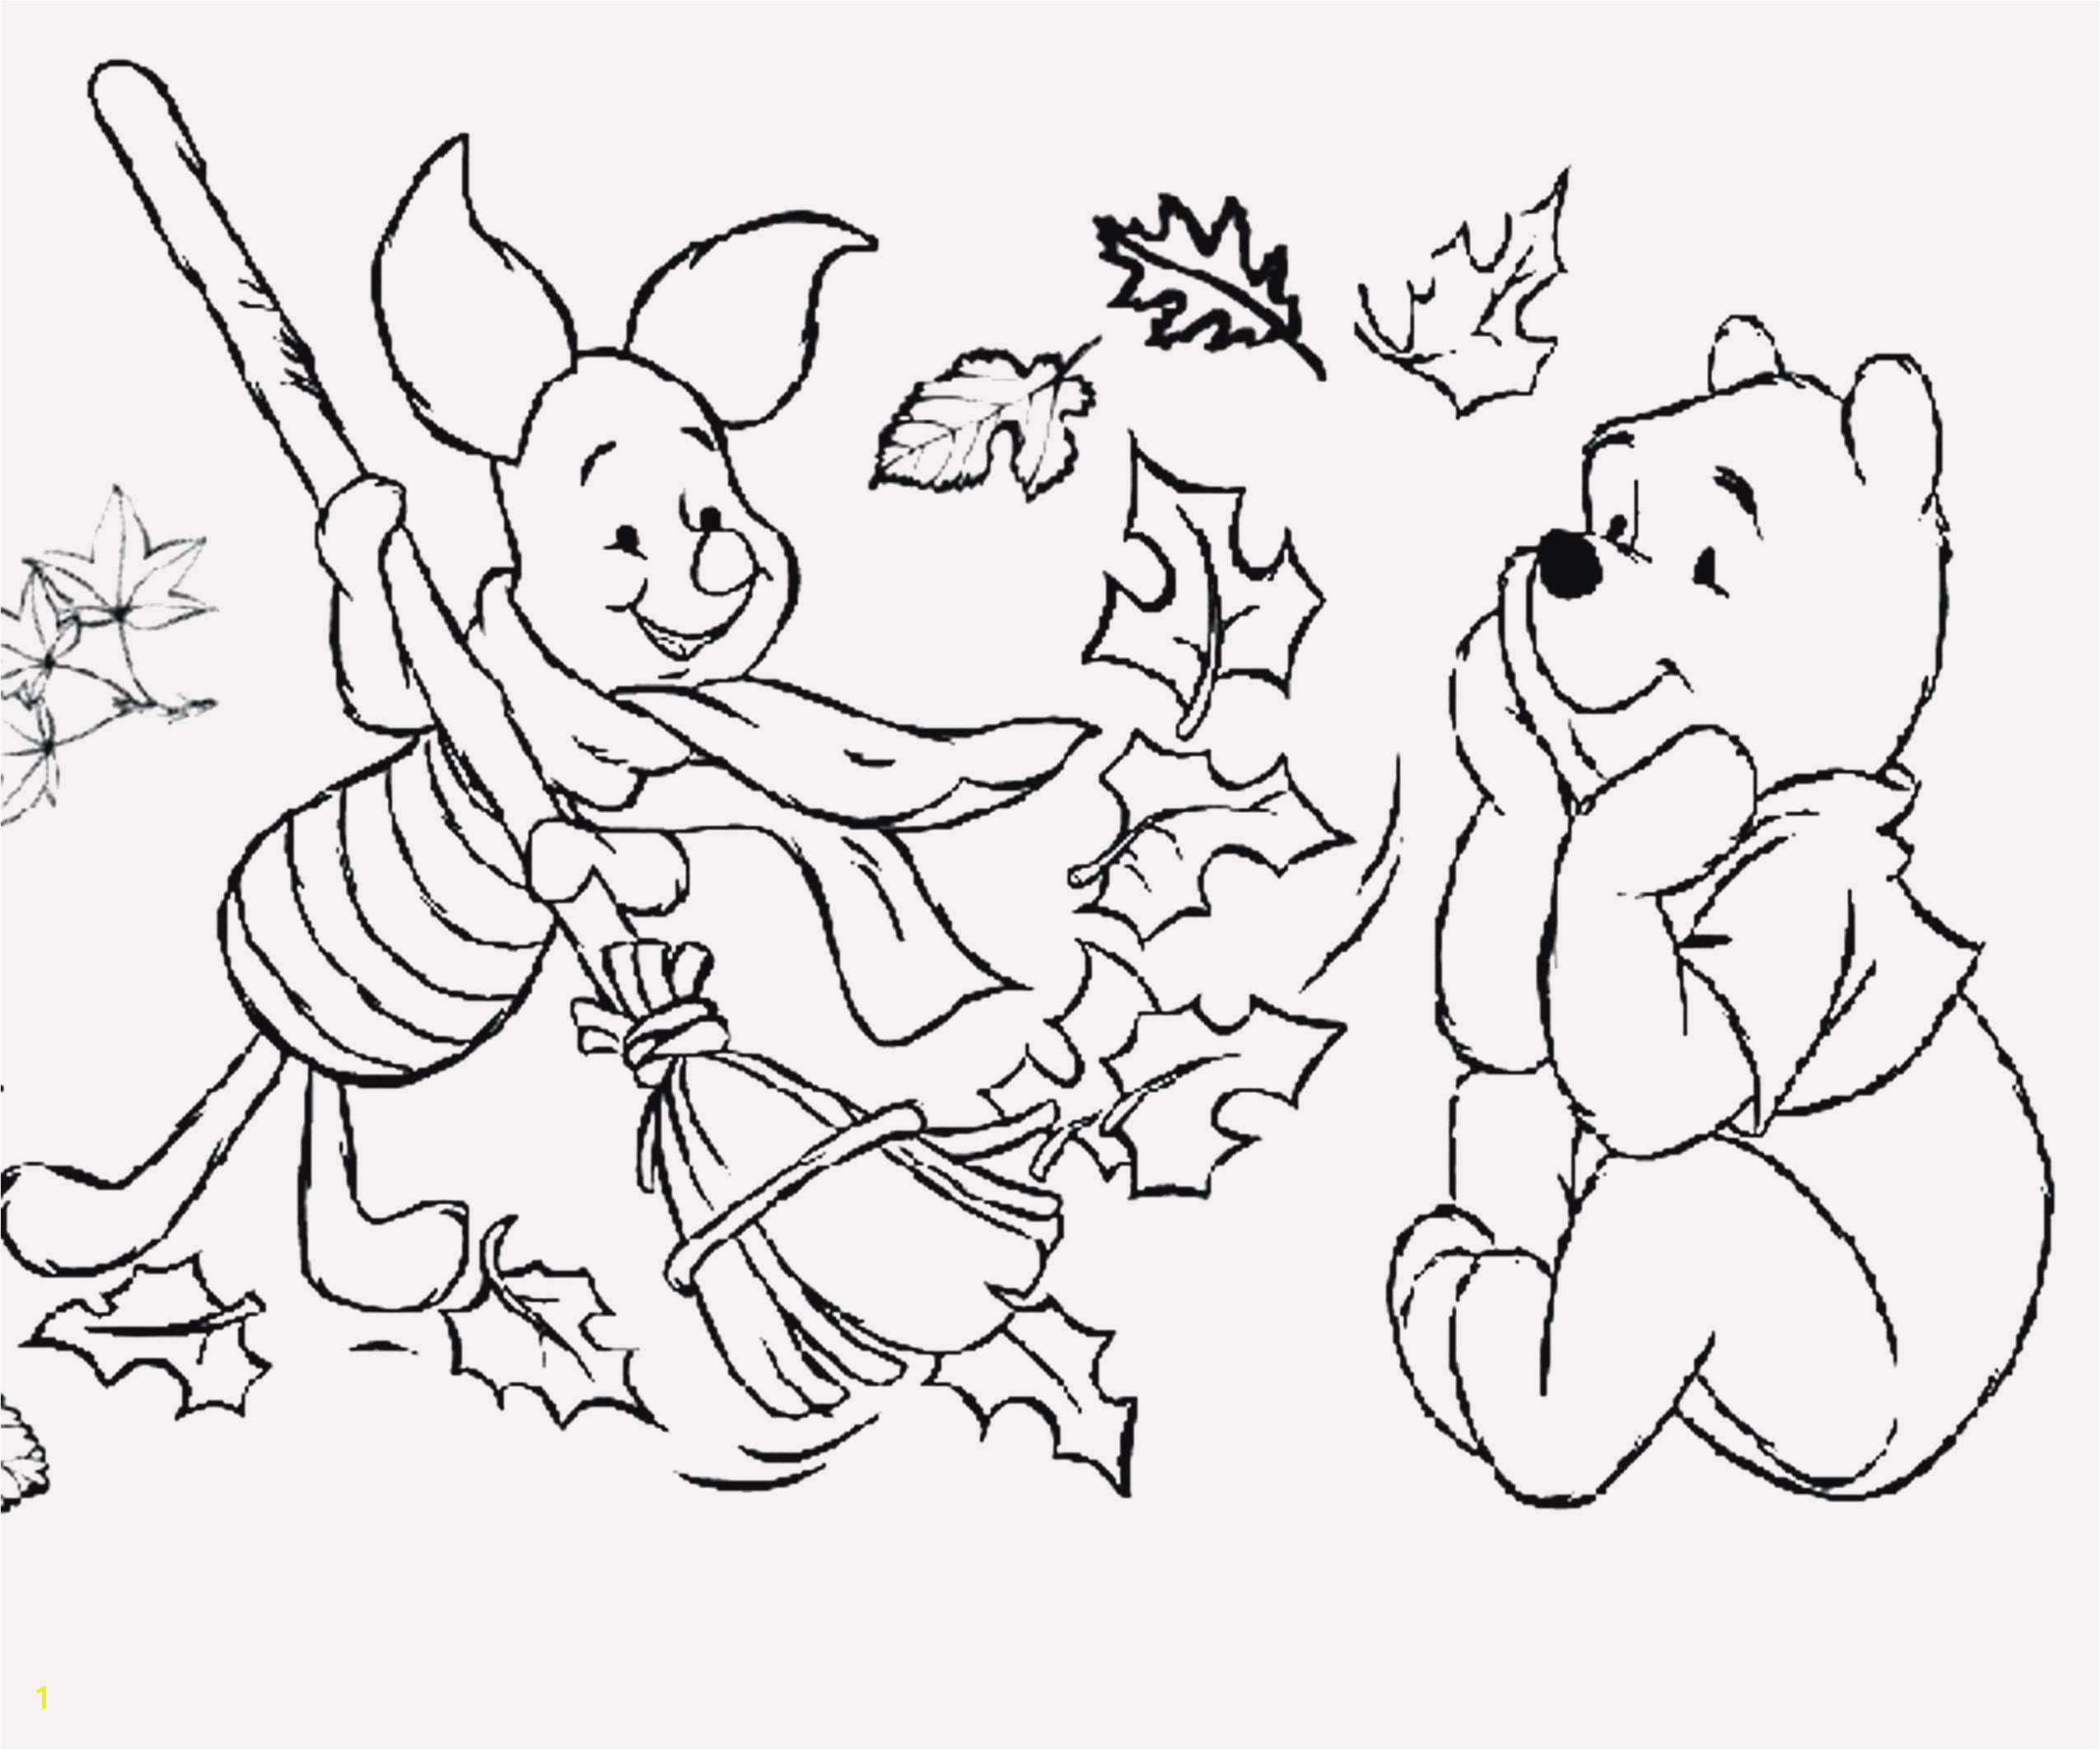 Boys Coloring Pages 0d Coloring Page Fall Coloring Pages for Kids Inspirational Coloring Pages Kidsboys